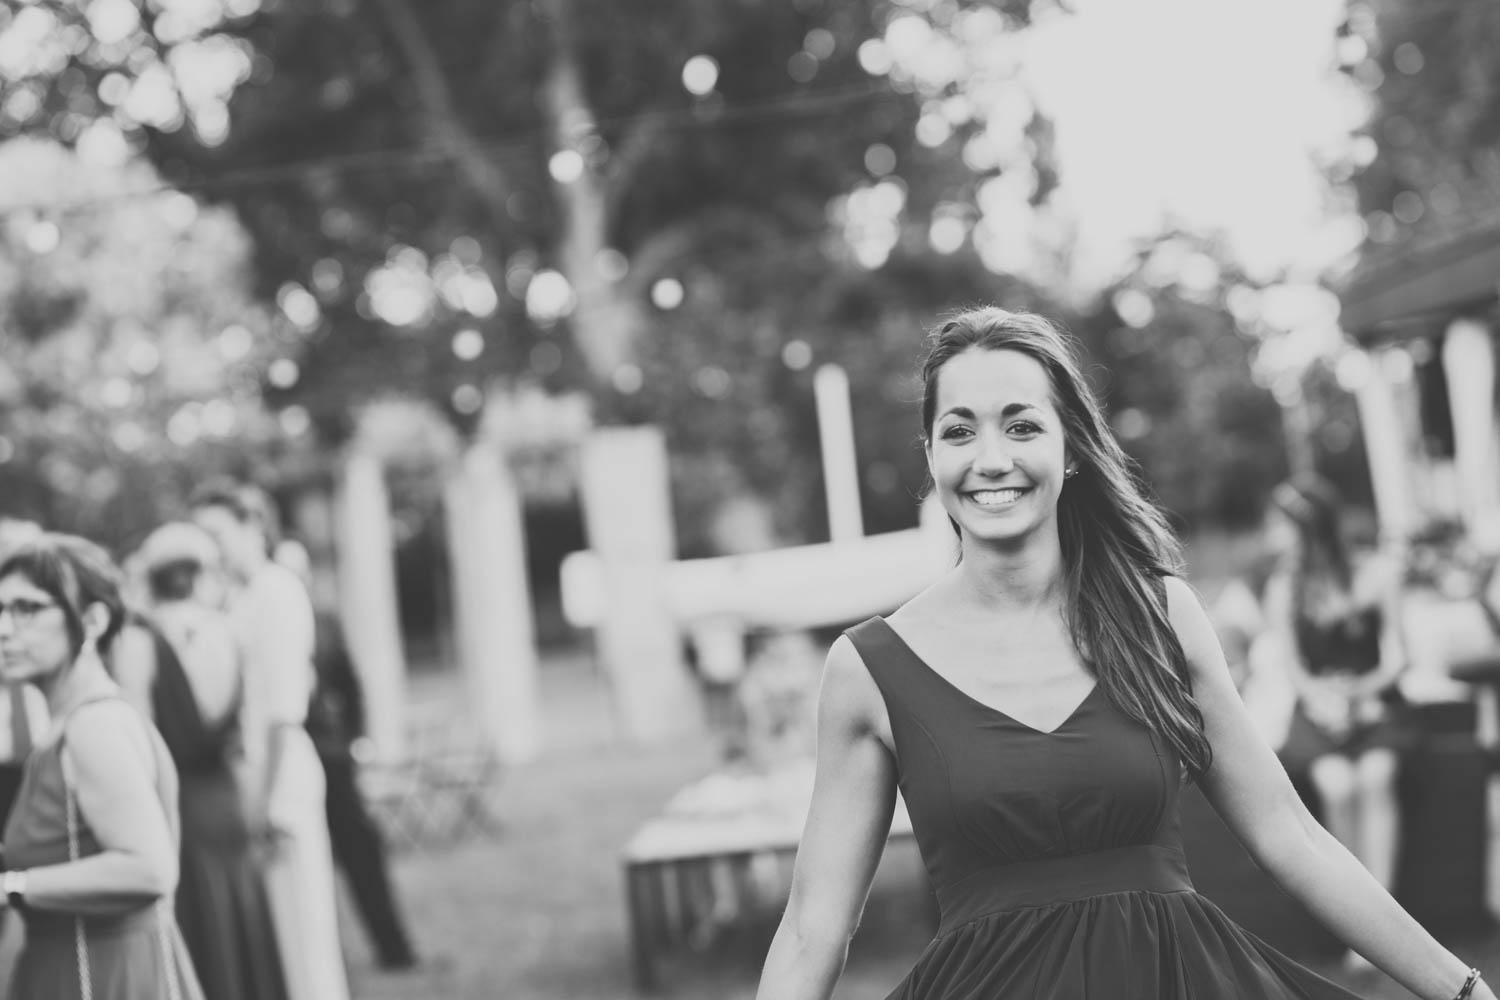 hondo_studio_wedding_photography_maria_ignasi_web-93